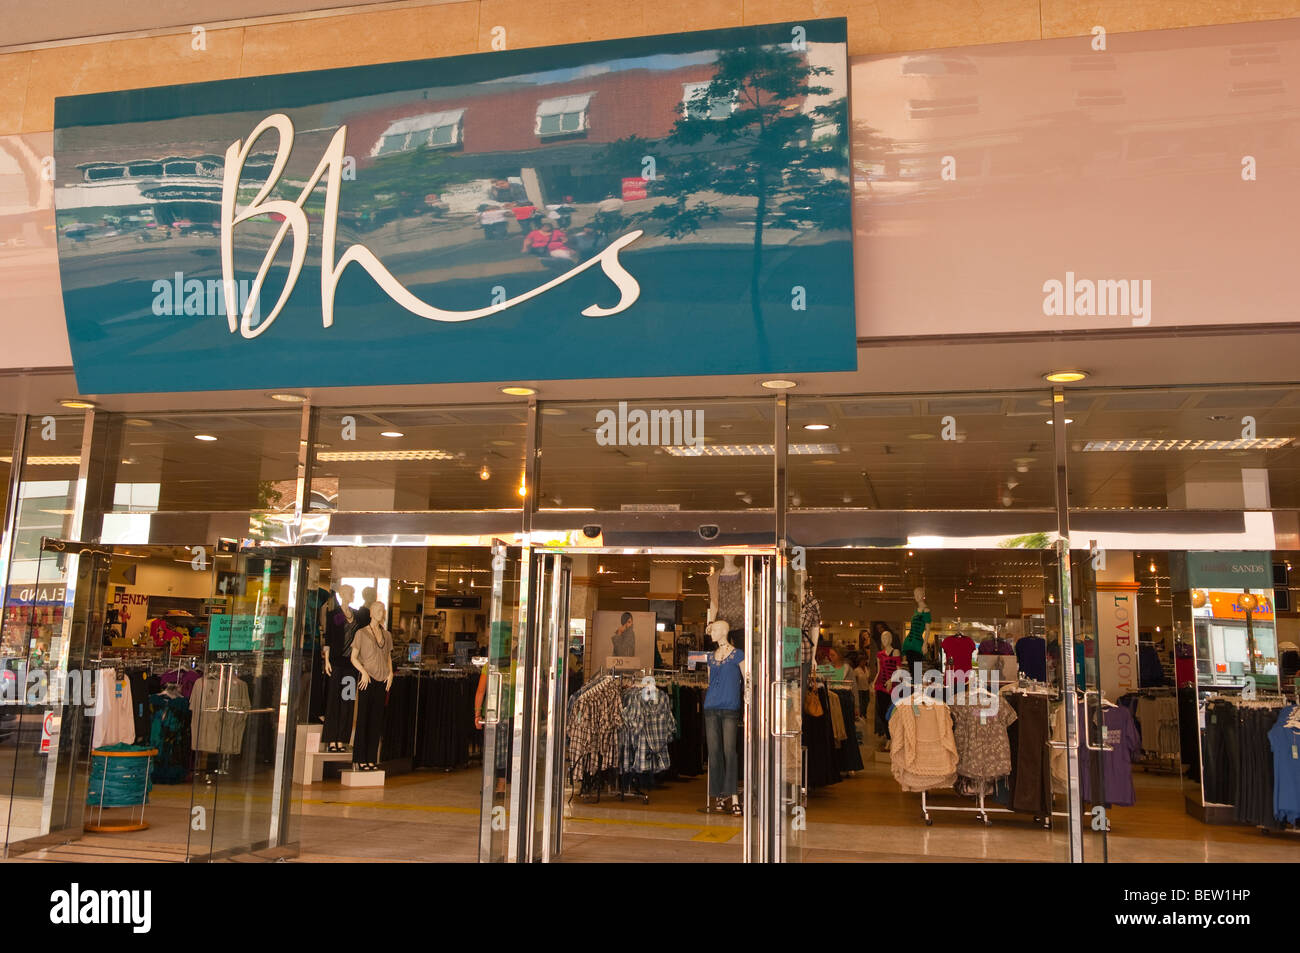 The BHS (British Home Stores) shop store in Norwich,Norfolk,Uk - Stock Image